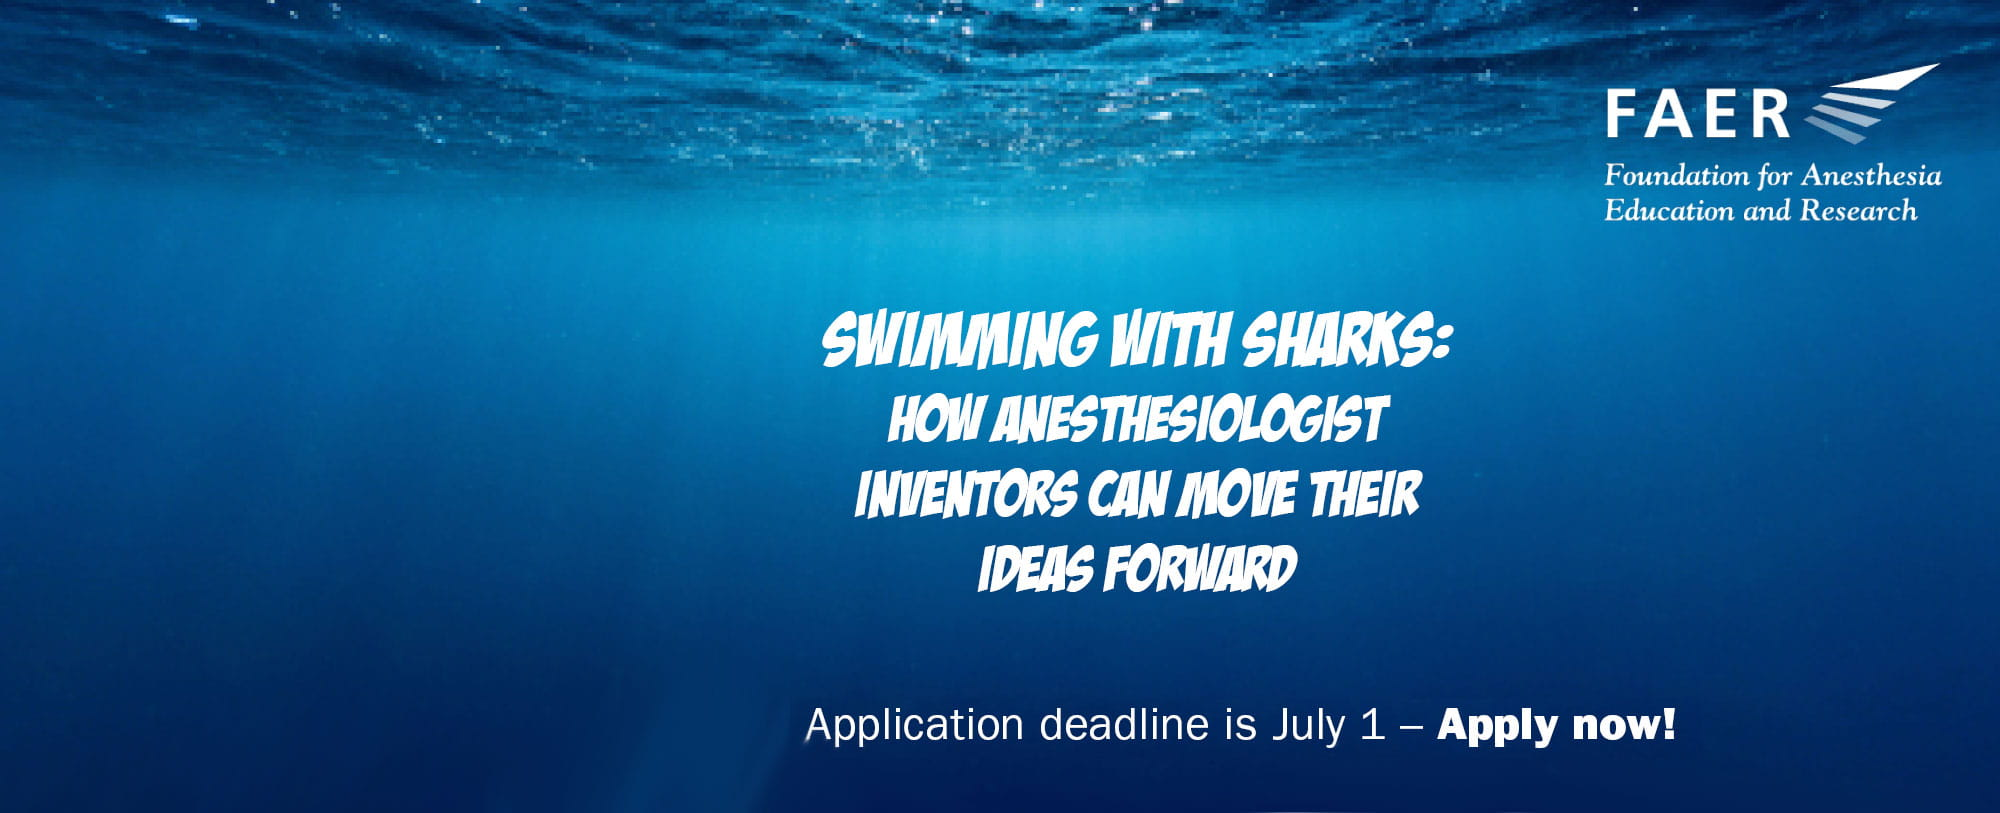 FAER Swimming with sharks apply now